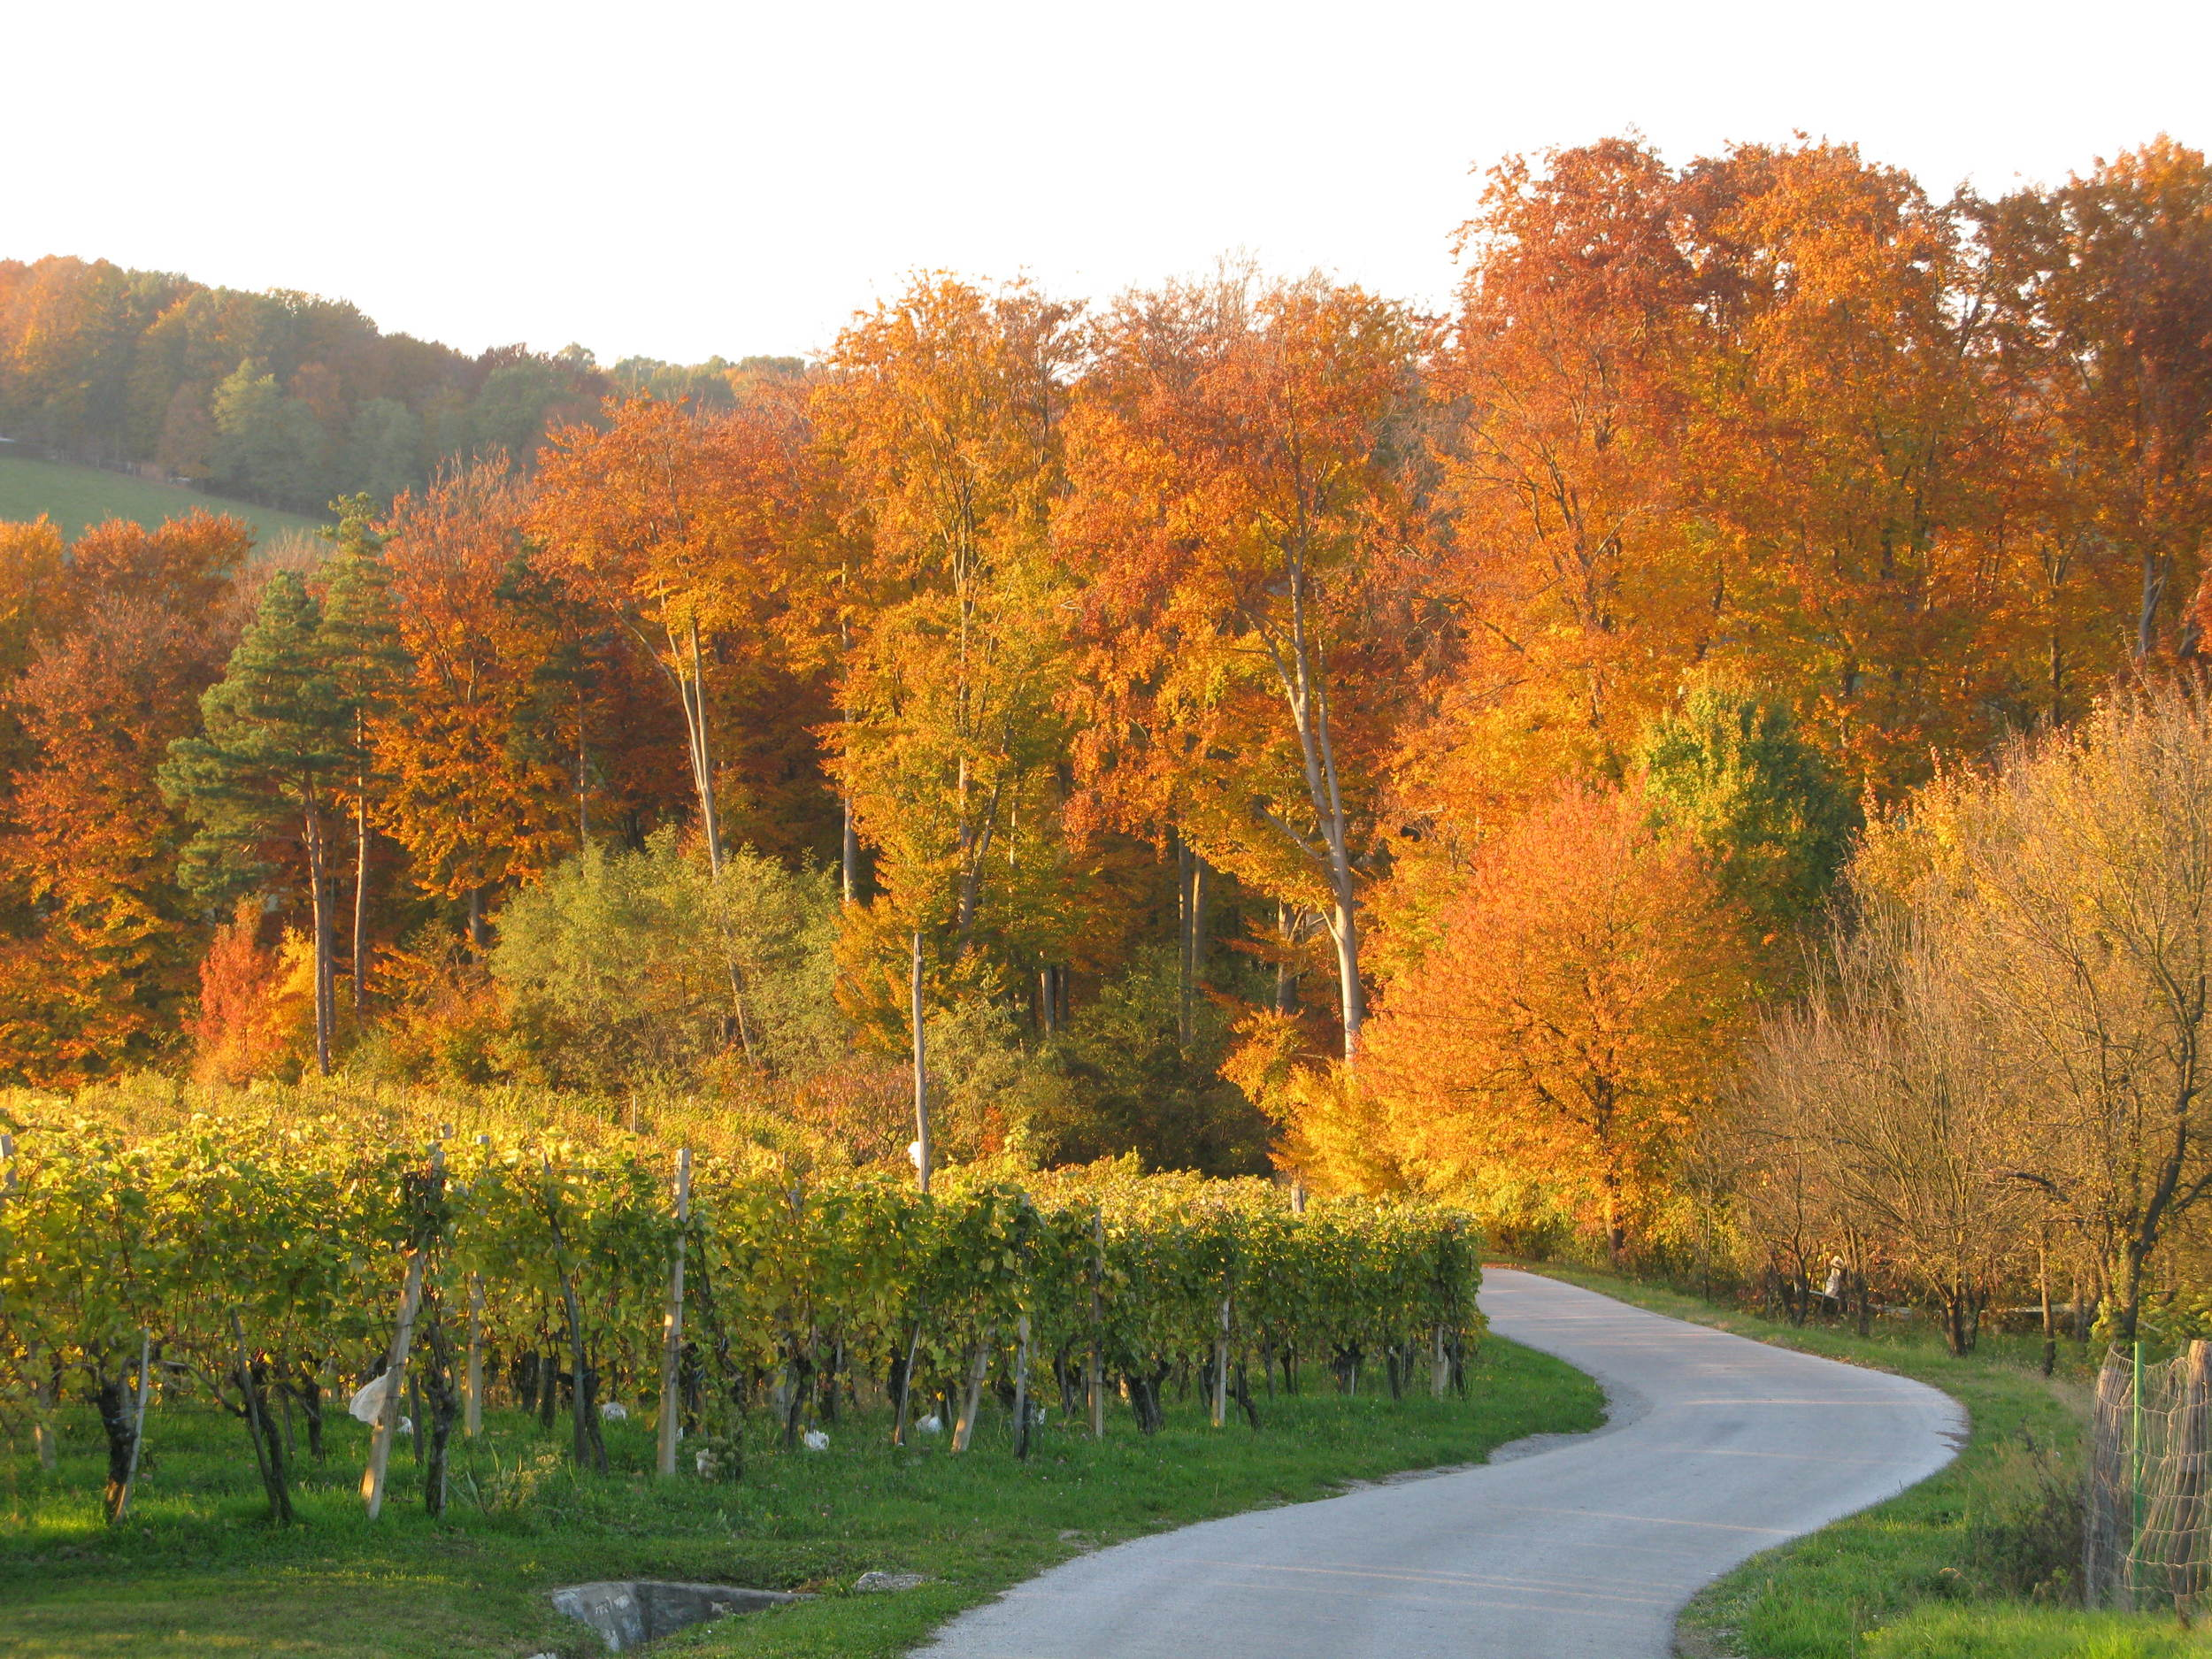 The autumn is a great time to visit